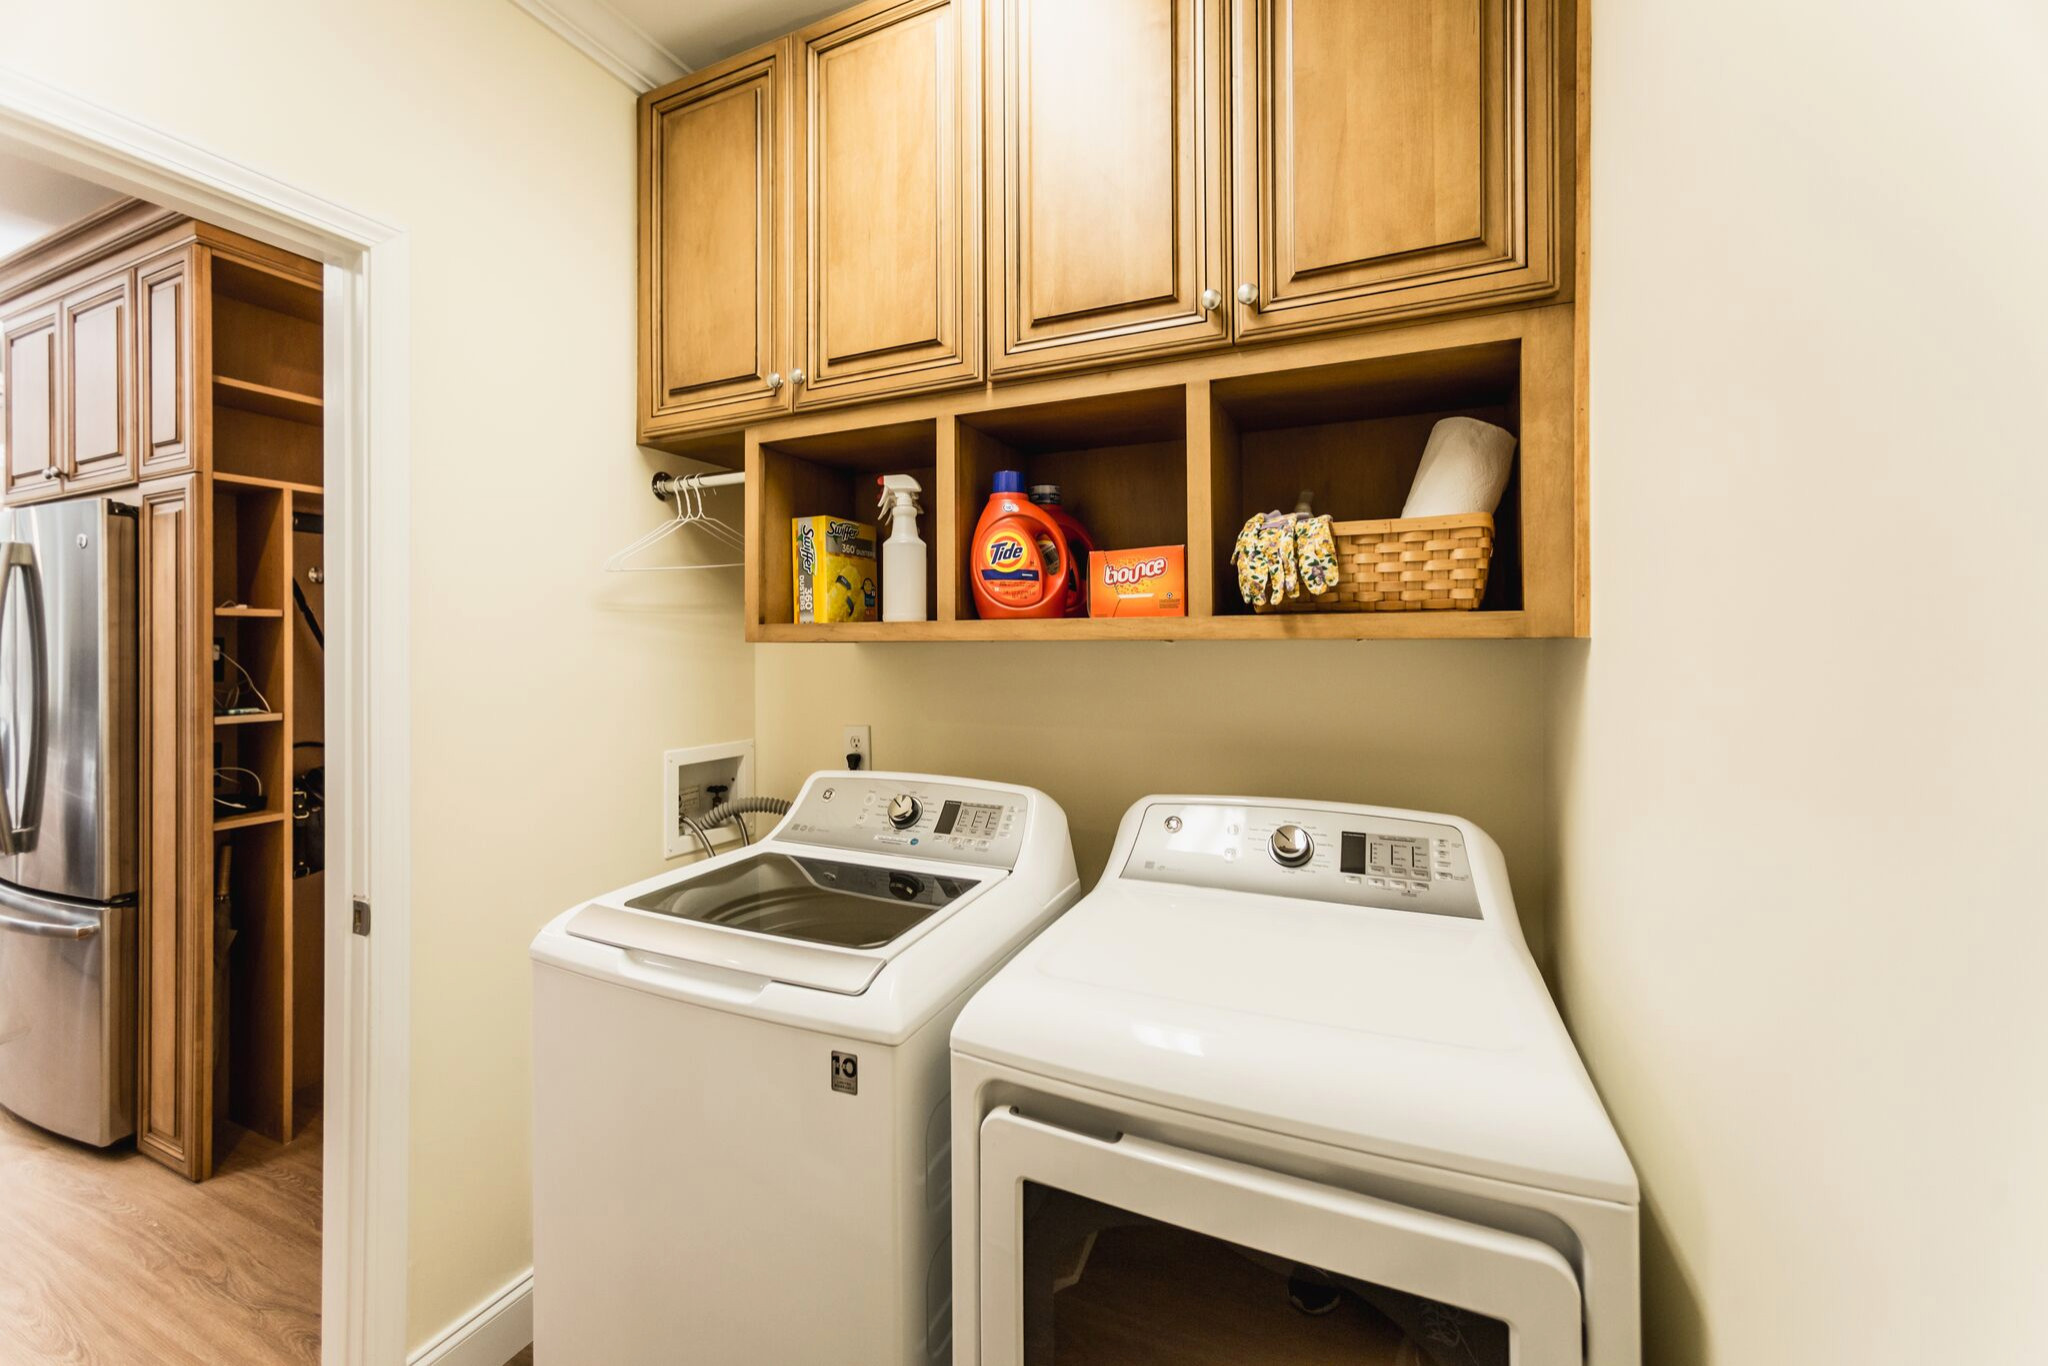 Laundry Room off of the kitchen